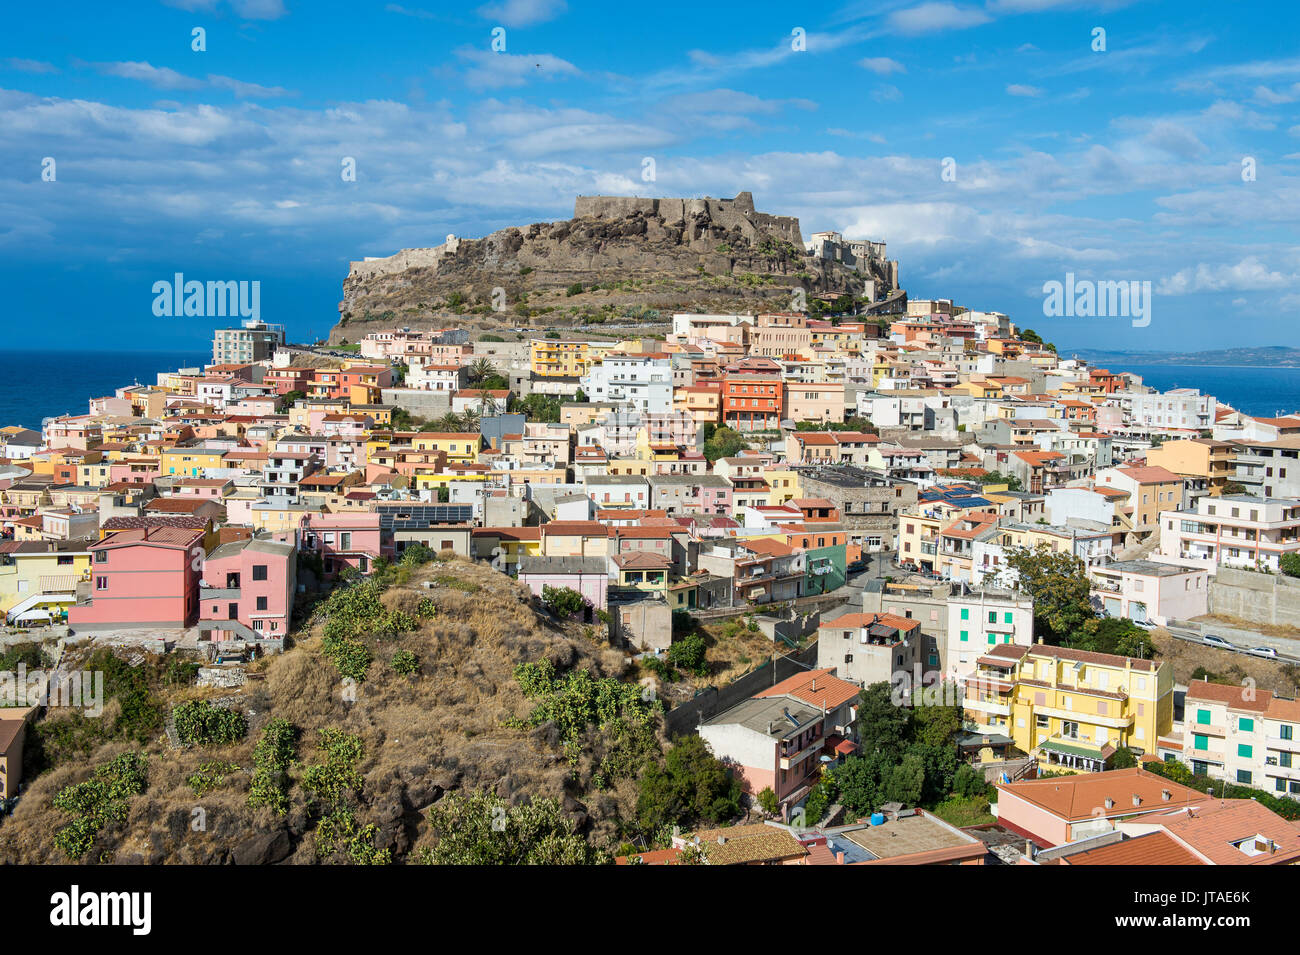 View over Castelsardo, Sardinia, Italy, Mediterranean, Europe Stock Photo